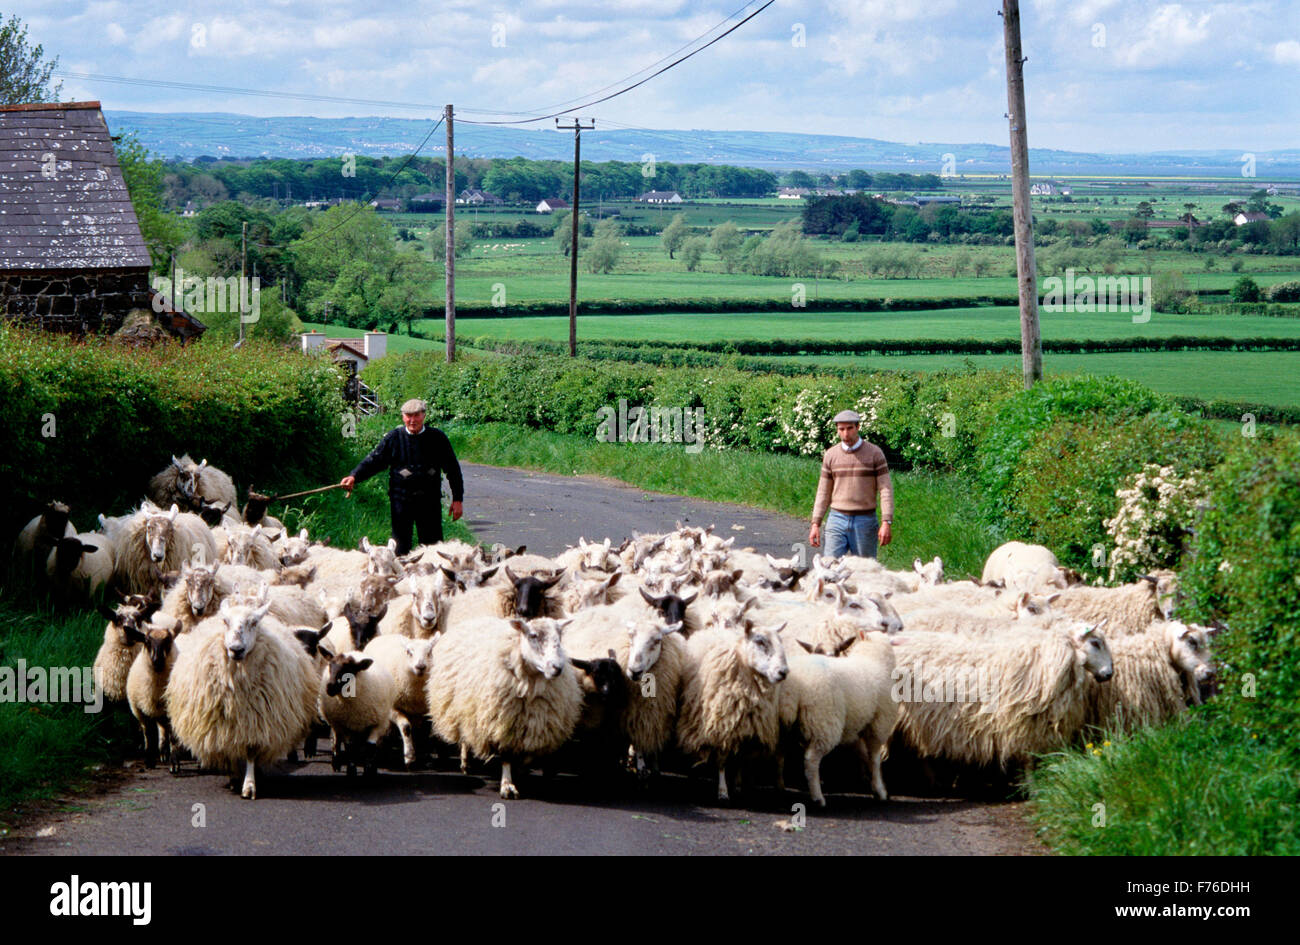 Sheep, County Down, Farming, road, agriculture, Irish, Northern Ireland - Stock Image